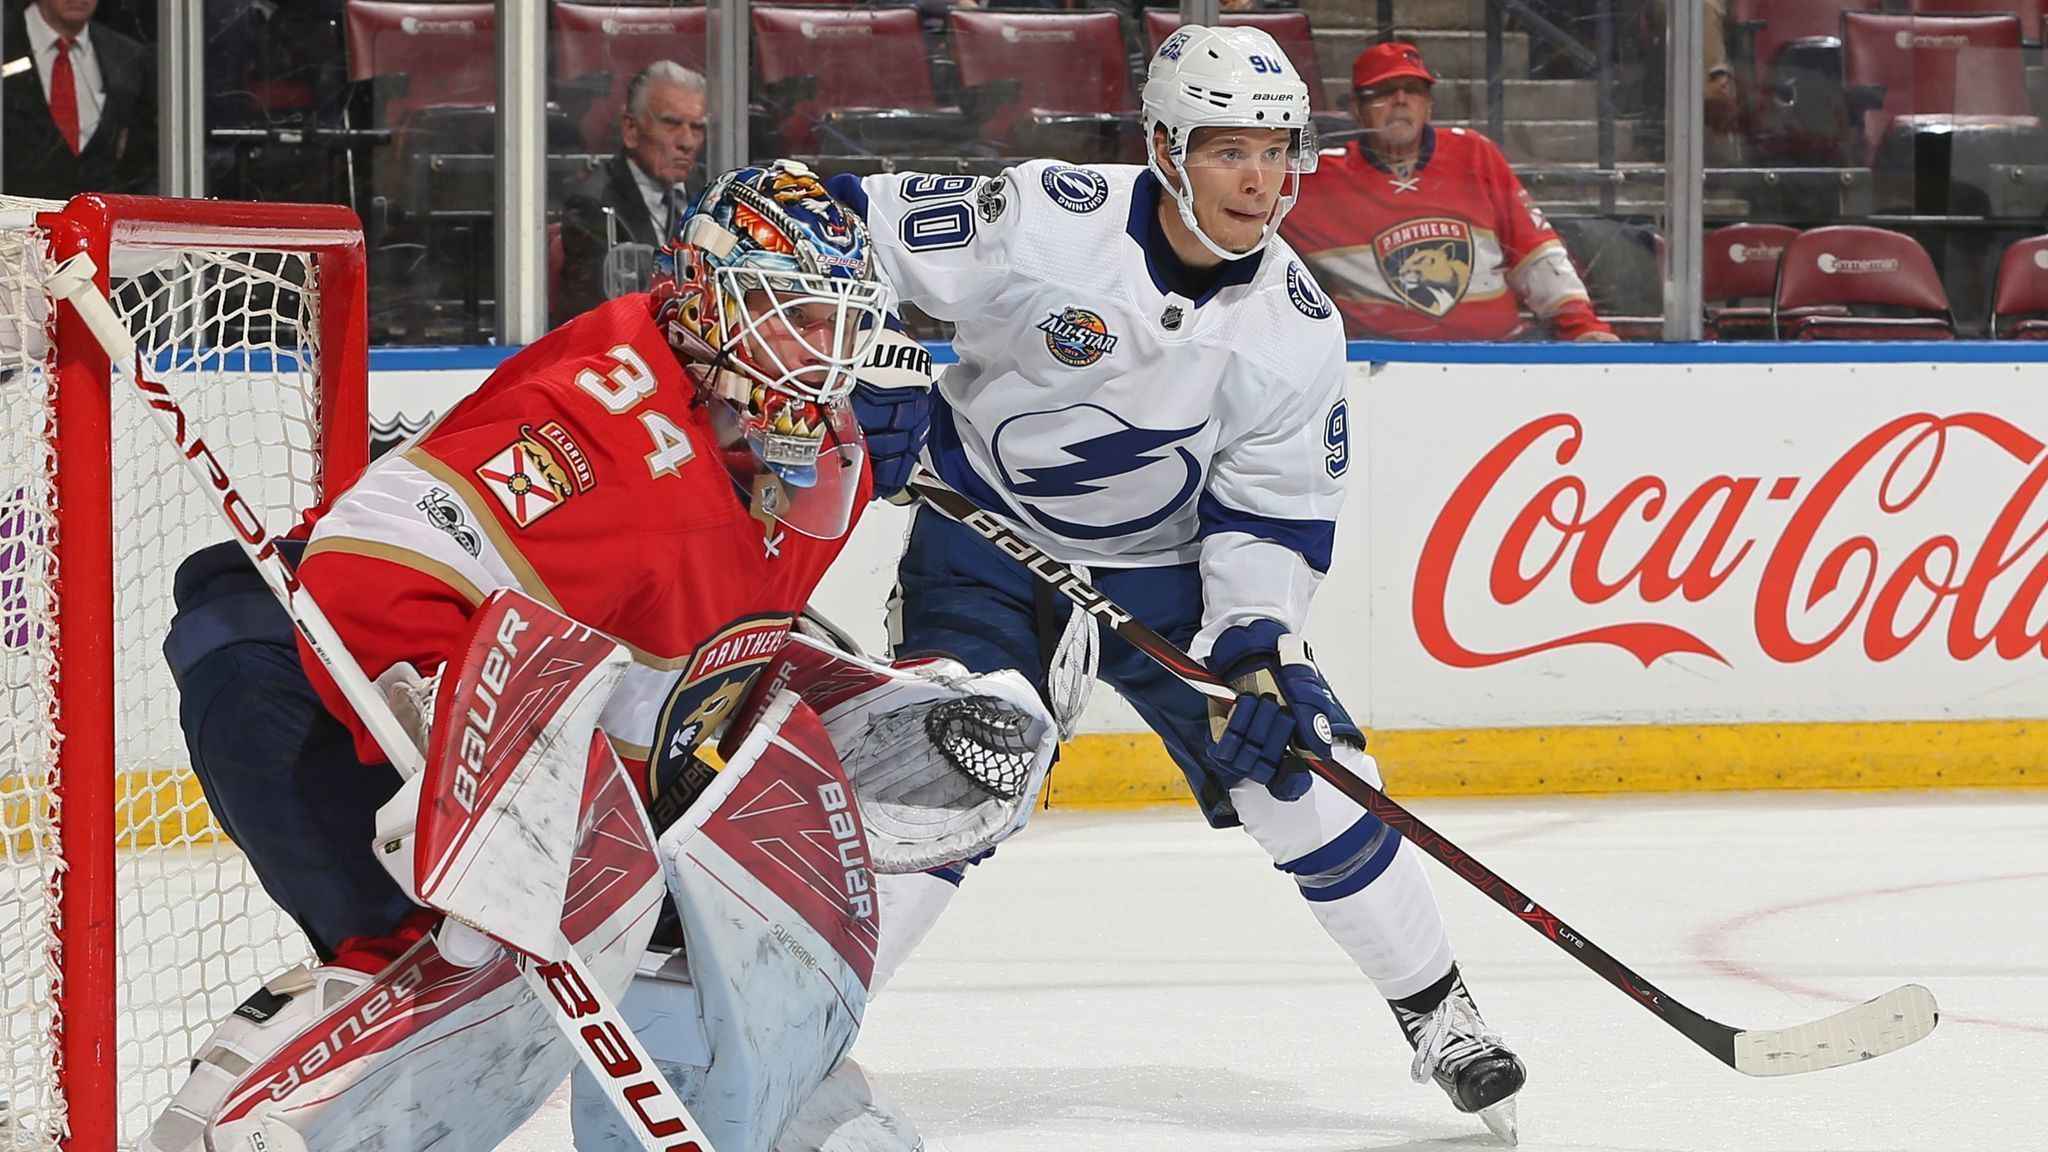 Fl-sp-panthers-preview-box-20171006